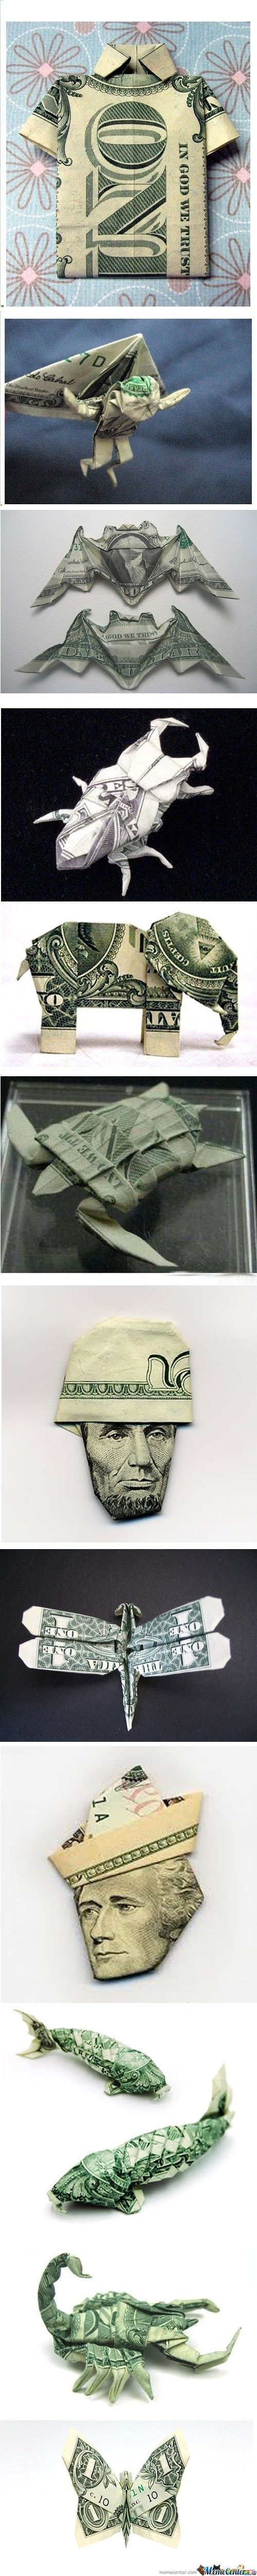 How to fold money.